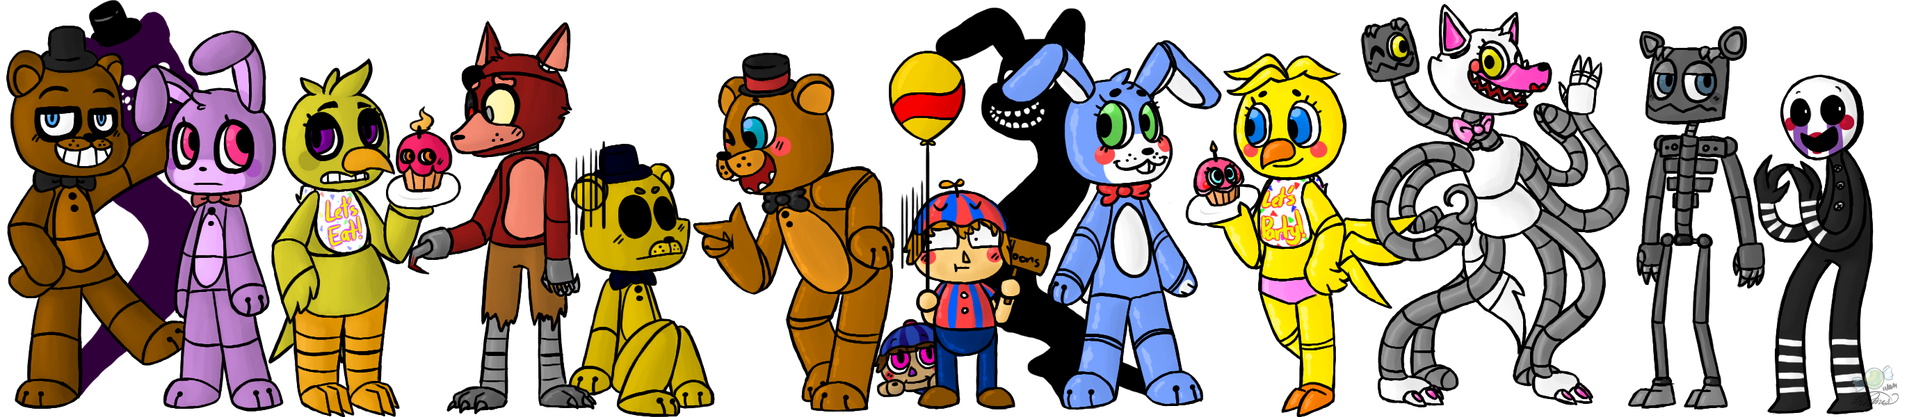 Five Nights at Freddy's /2 by CandyKidneys